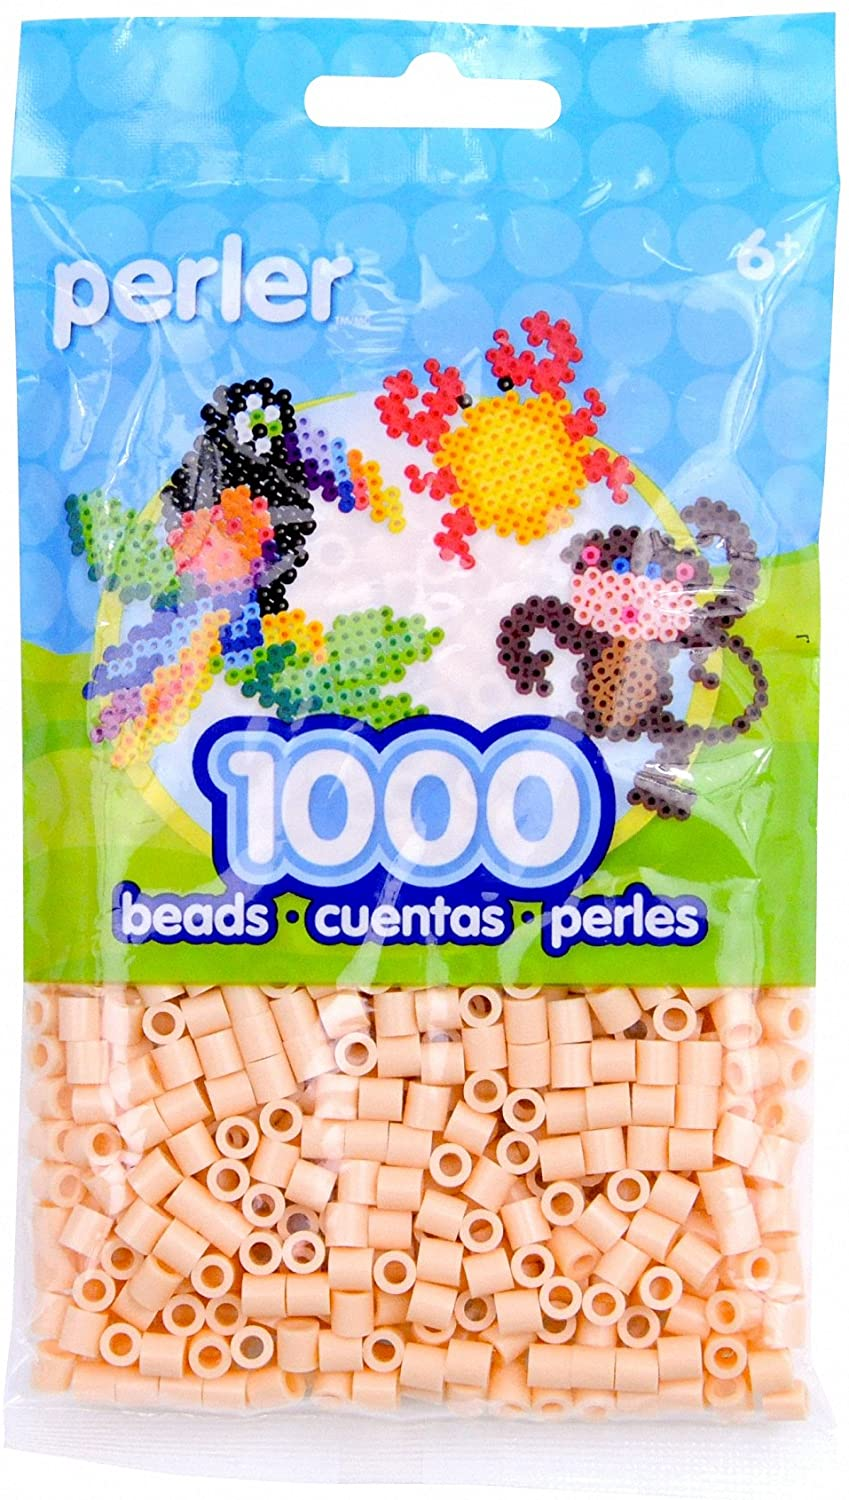 Perler Beads Fuse Beads for Crafts, 1000 pcs, Peach